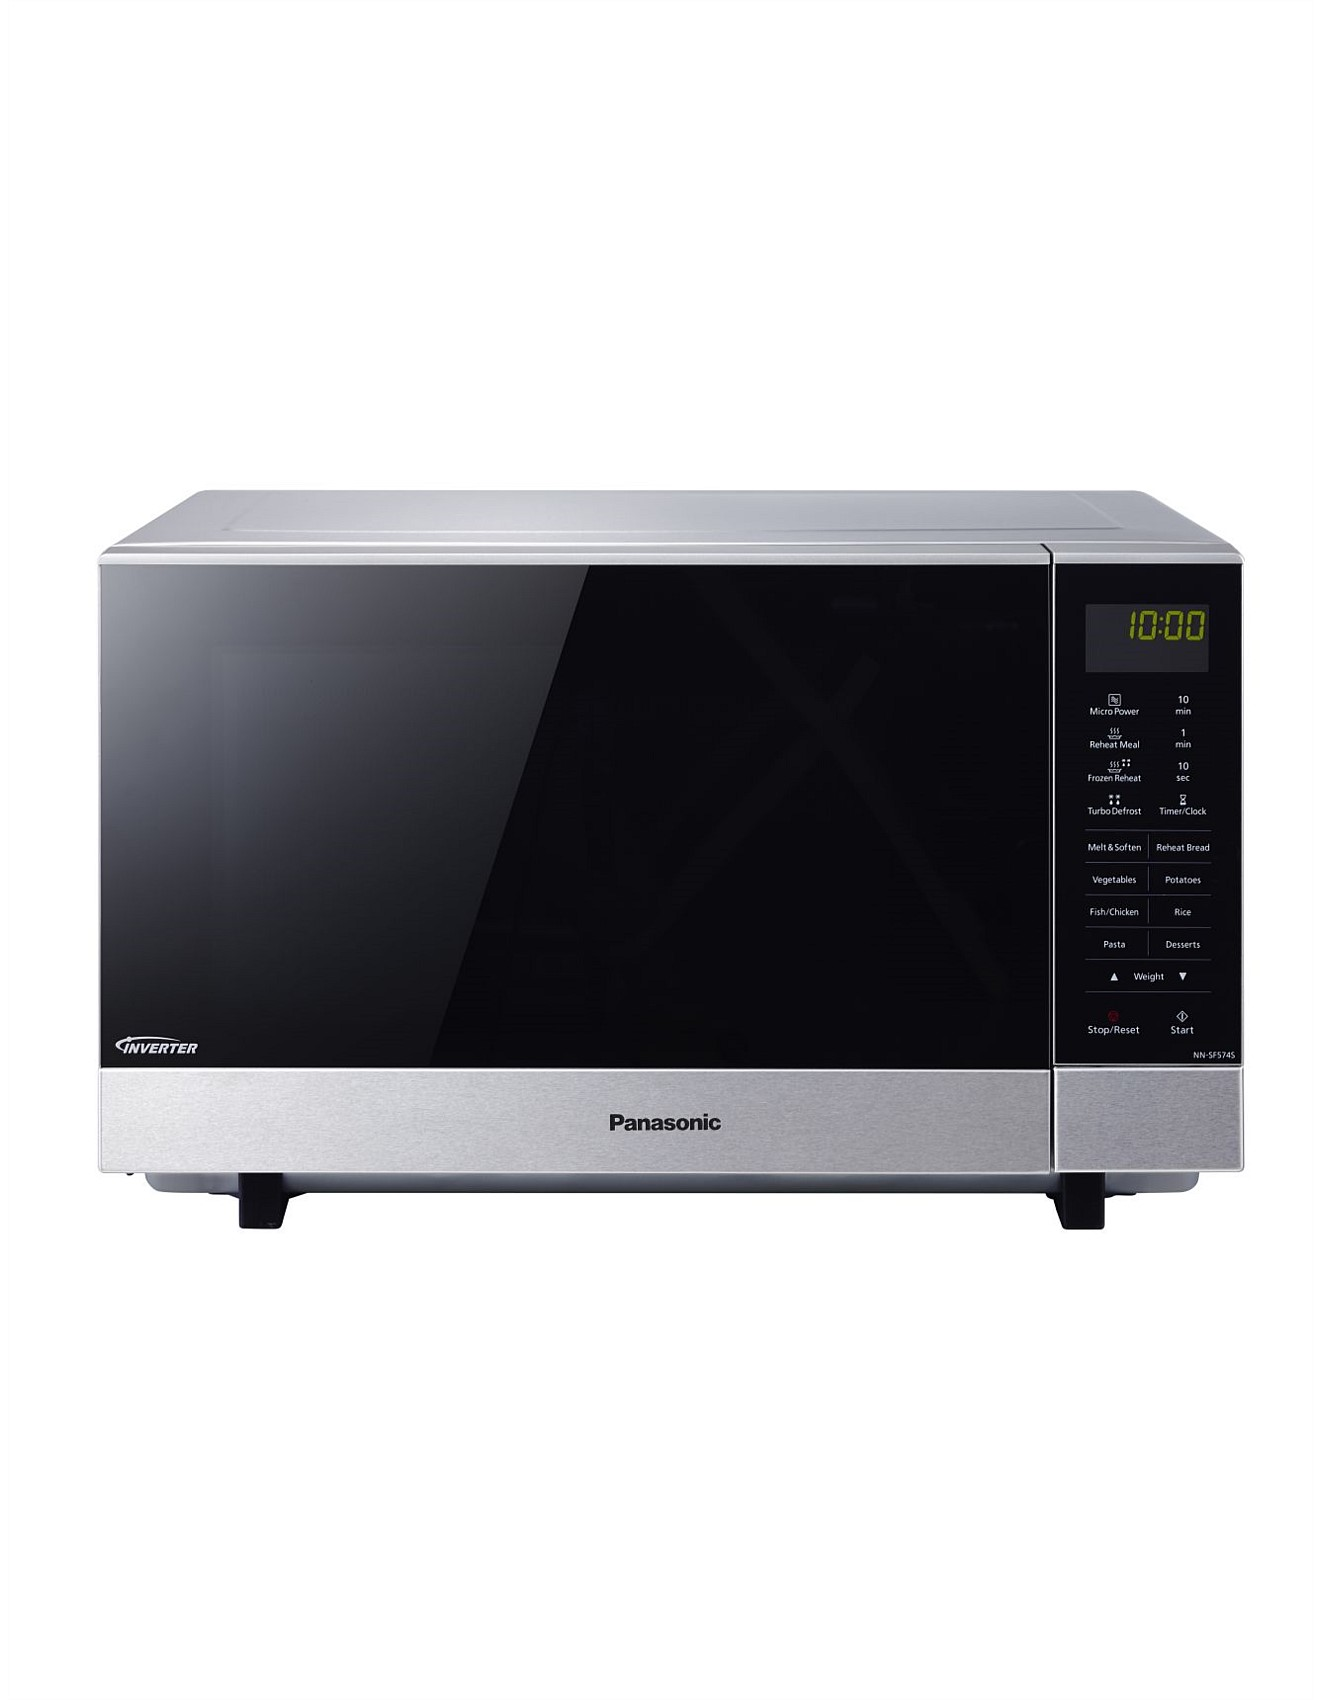 panasonic inverter microwave nn-sf564w manual